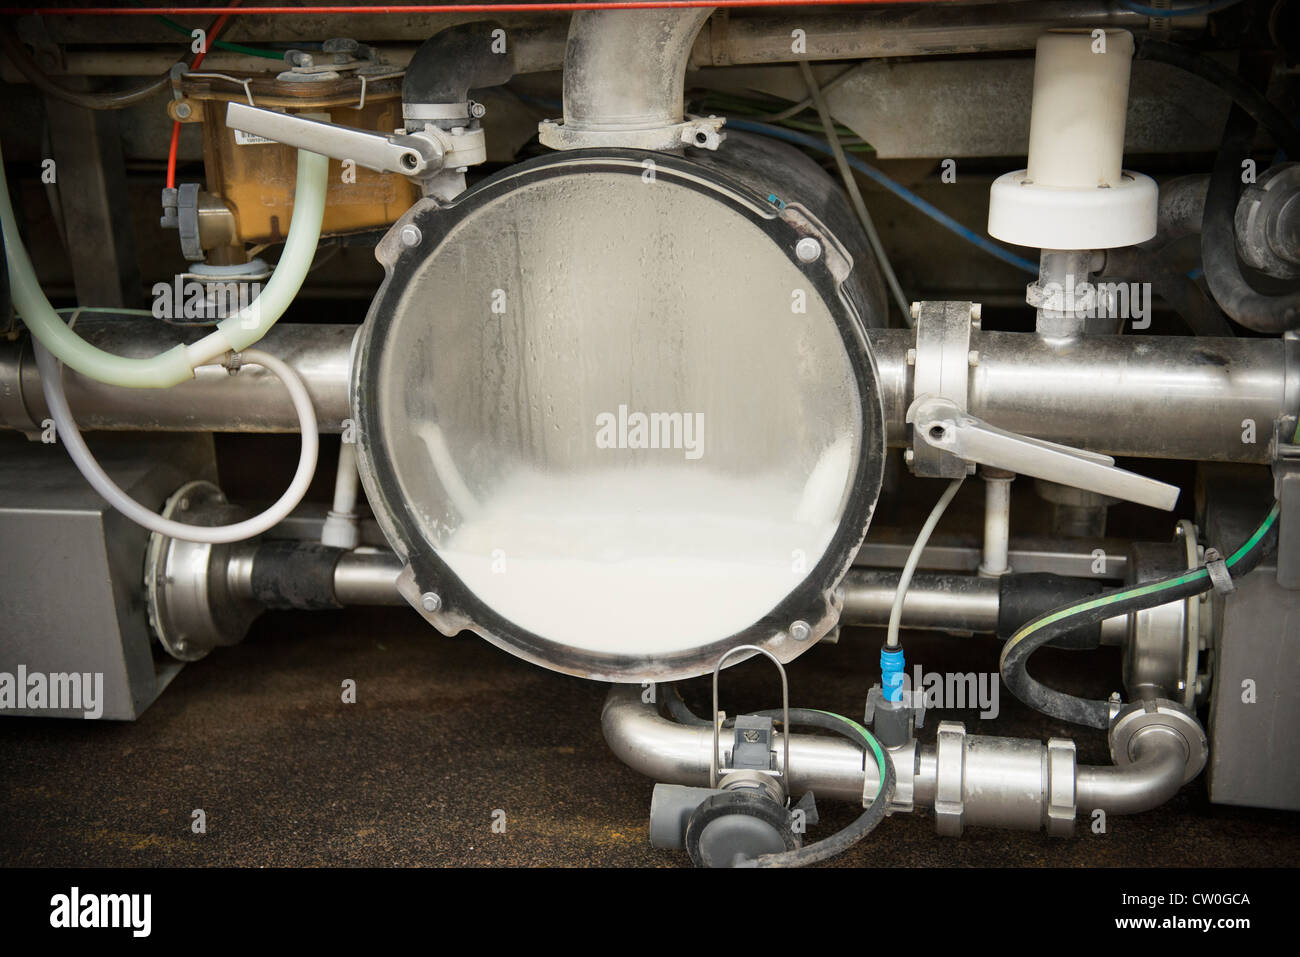 Milk in collection machinery in parlor - Stock Image